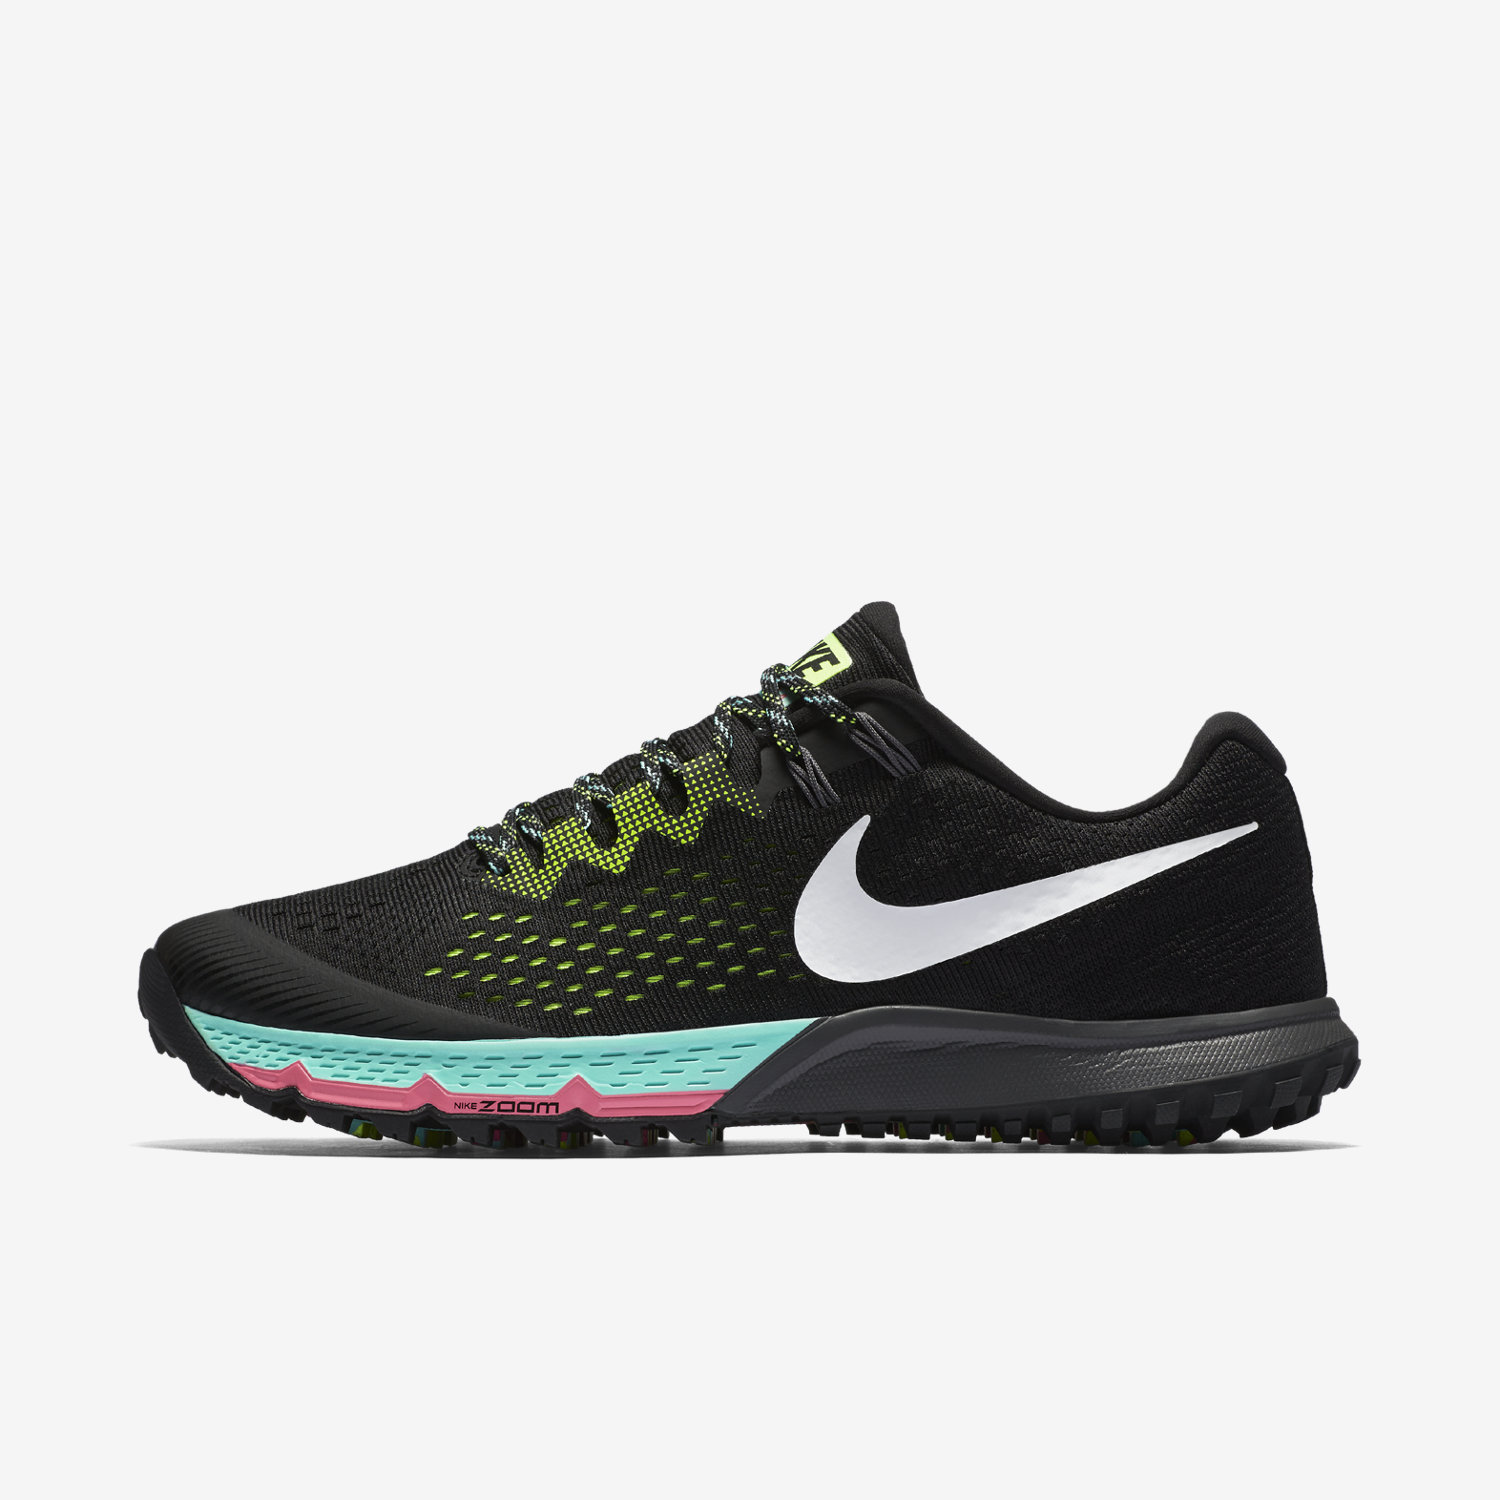 nike shoes made for obama and the pentagon attack 843368